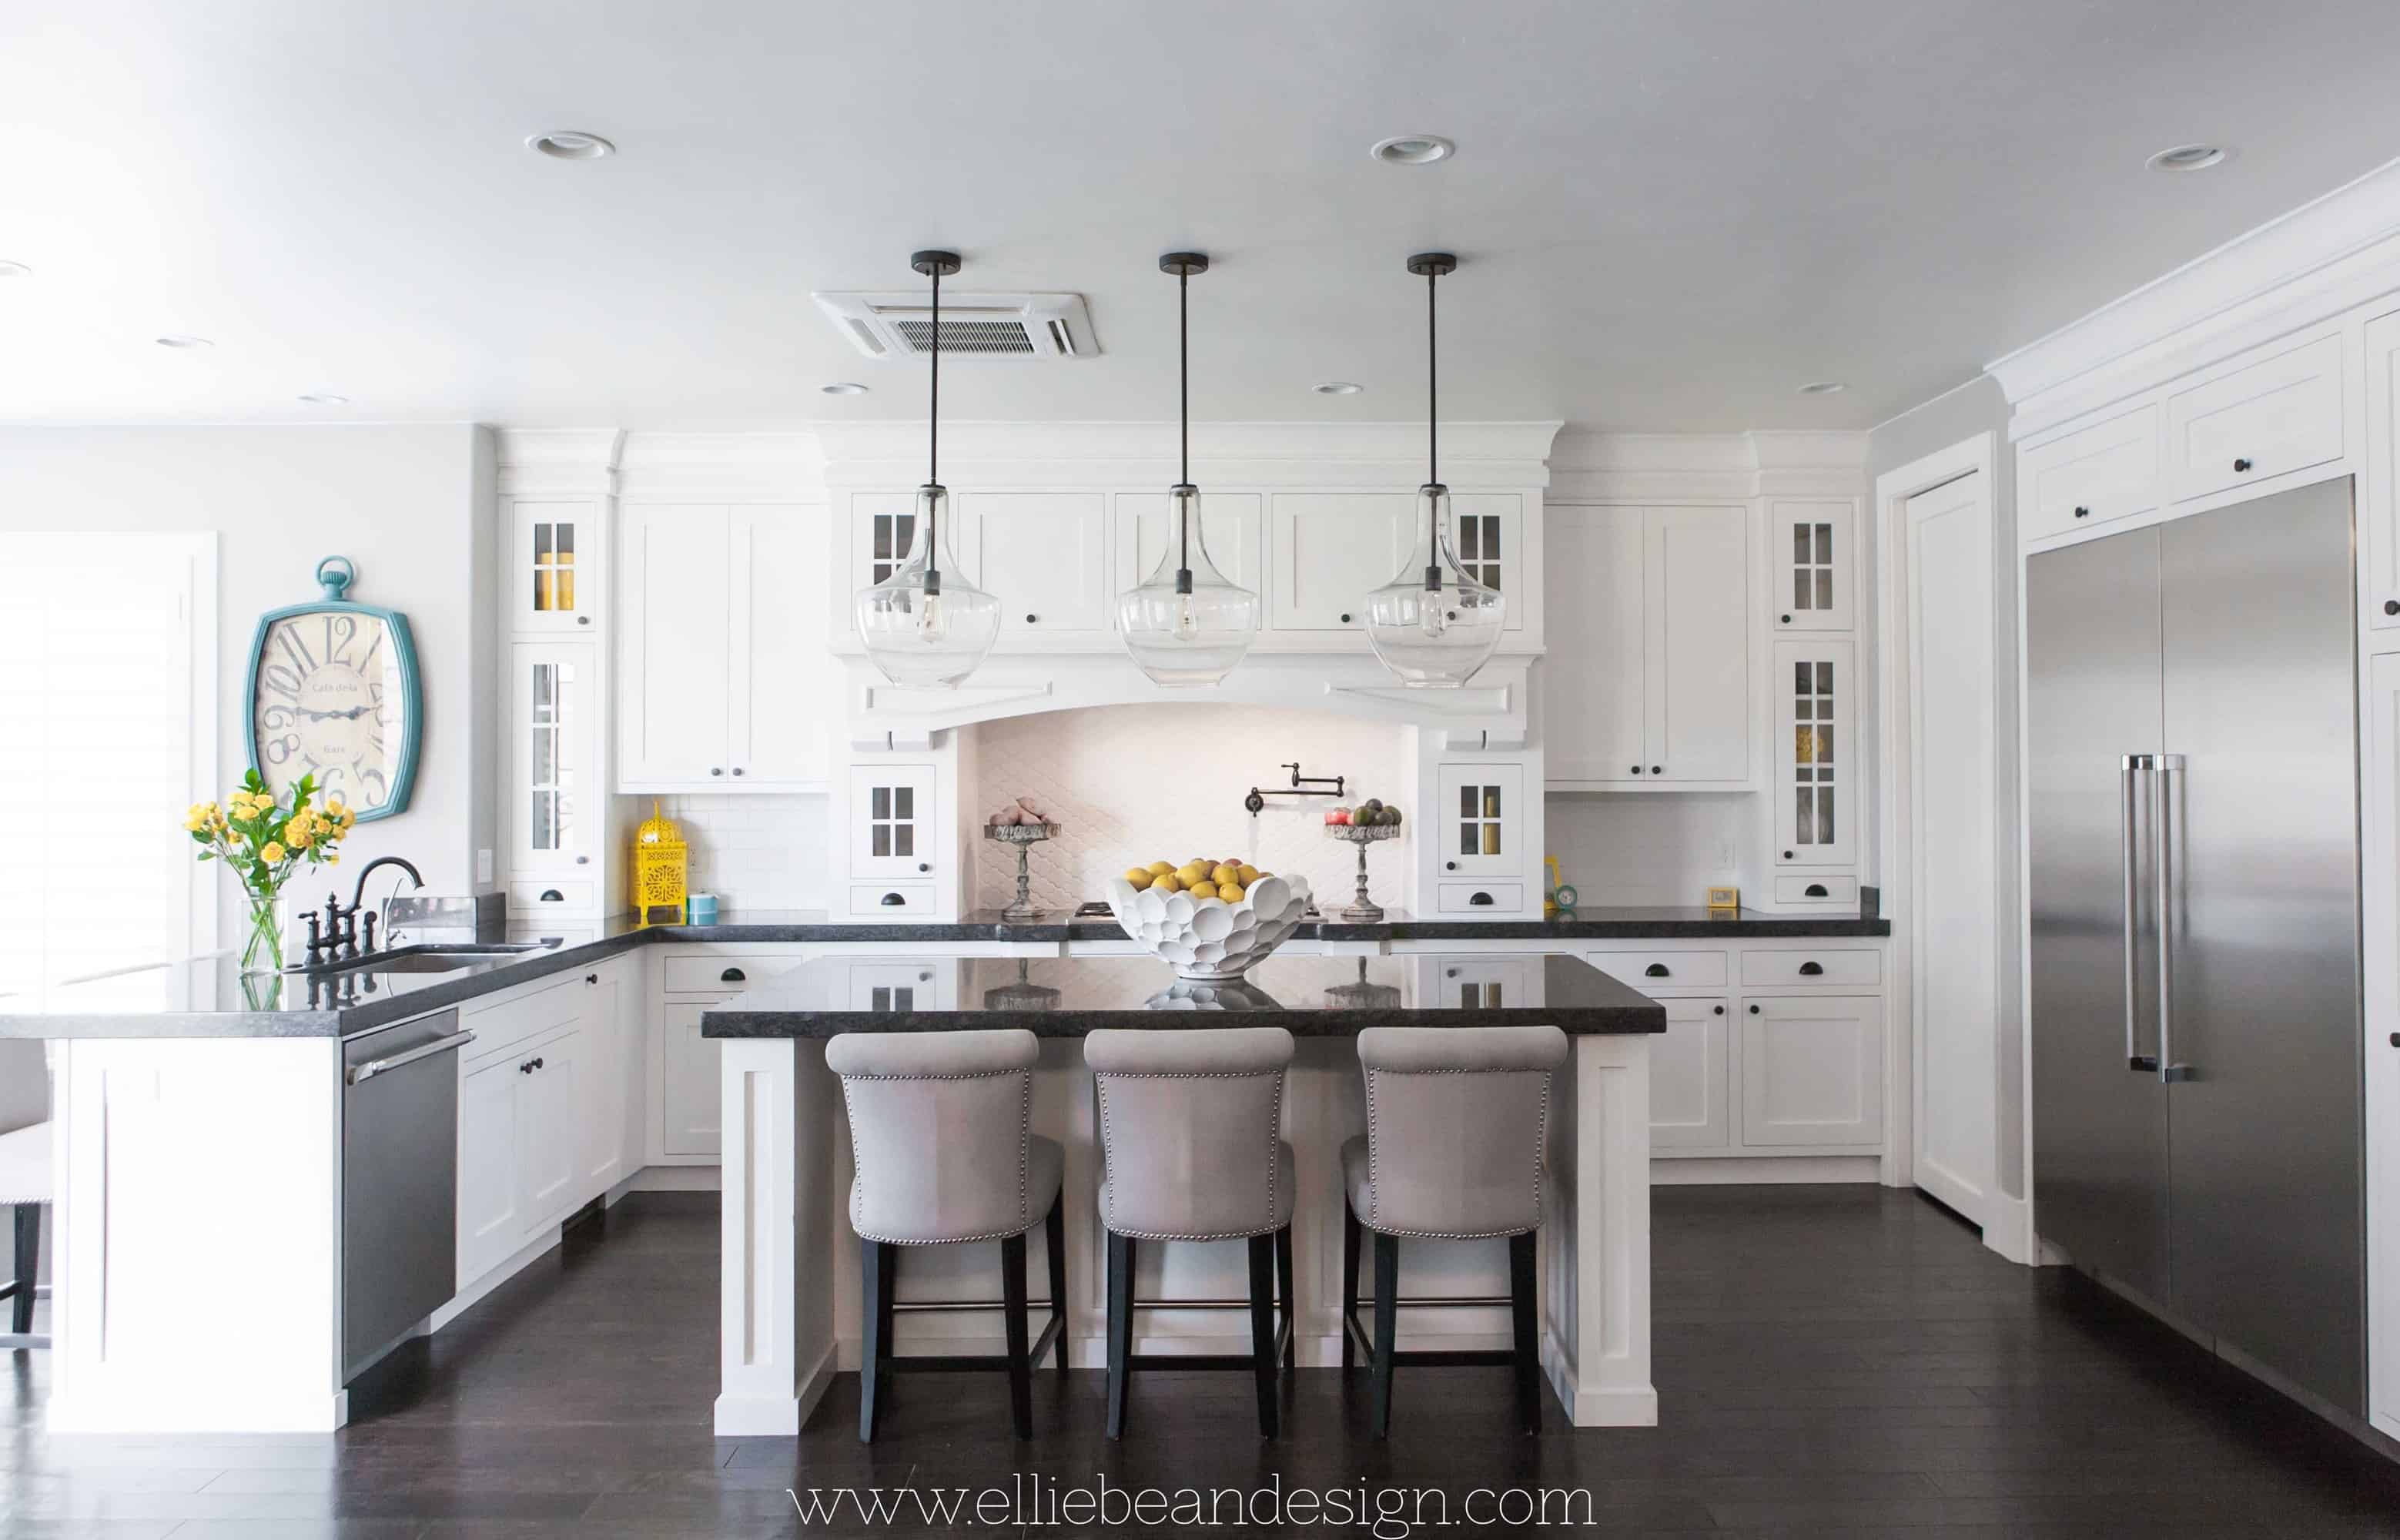 Exceptionnel 10 Rules To Create The Perfect White Kitchen! Www.overthebigmoon.com